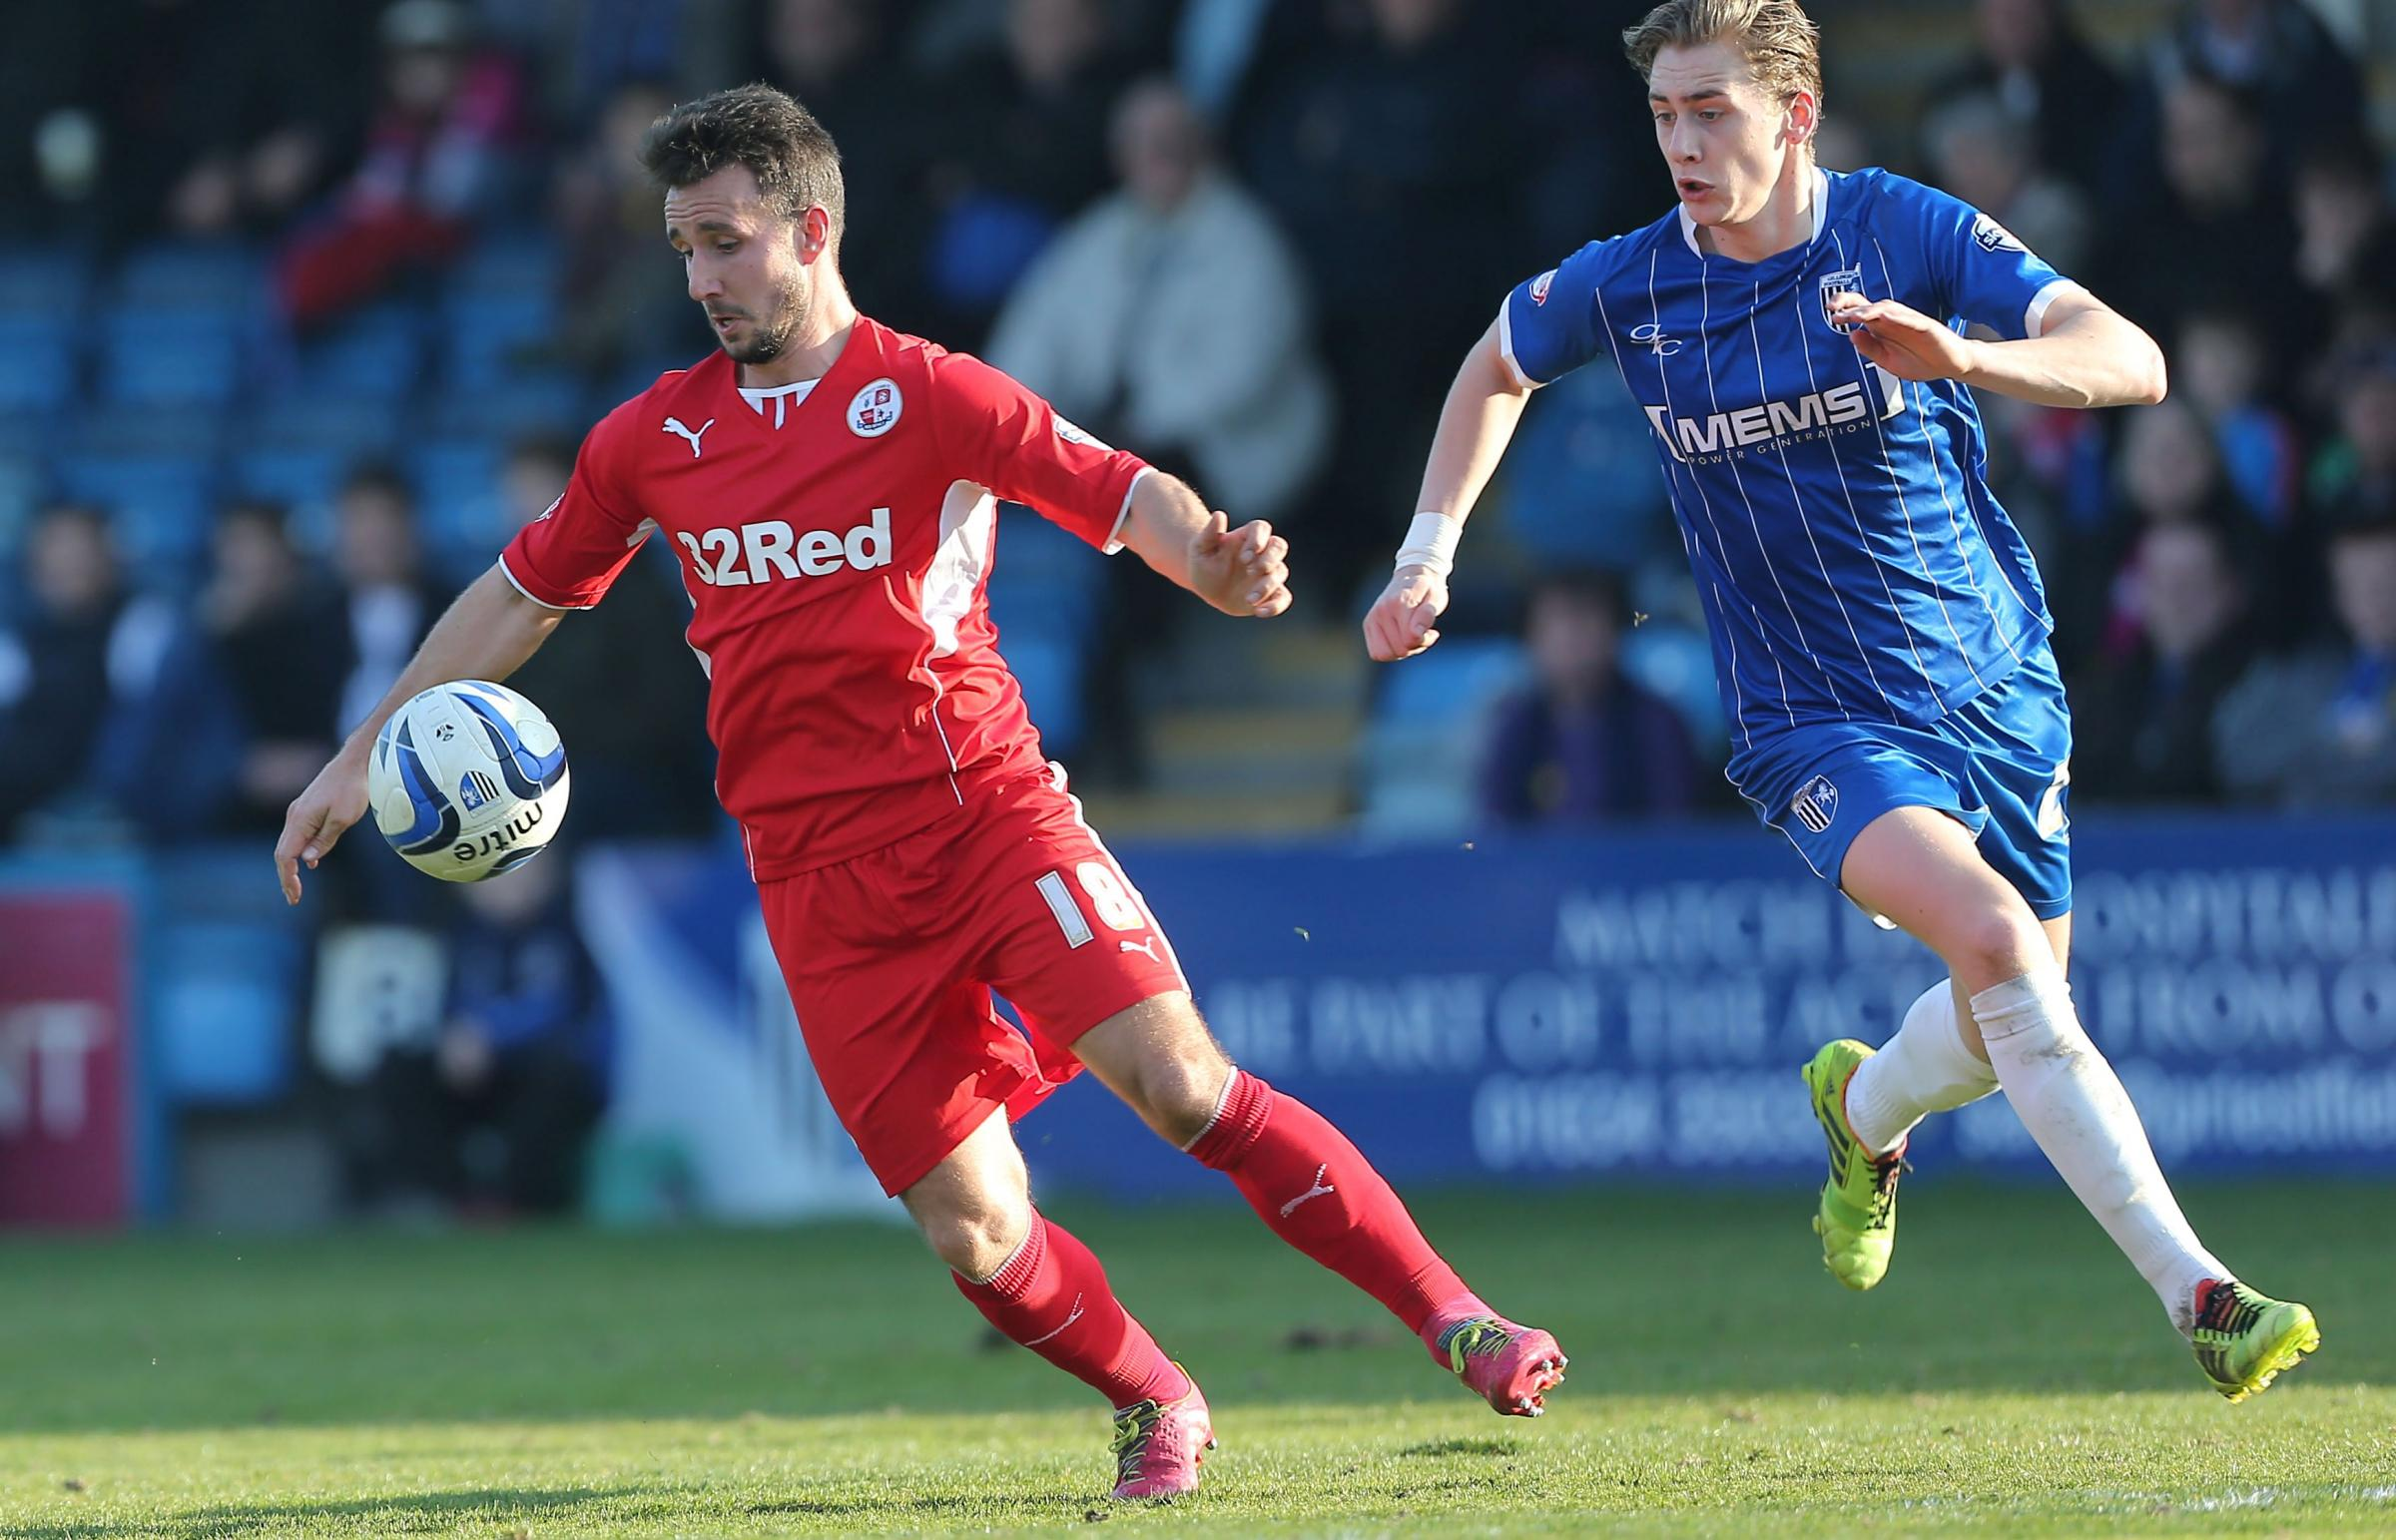 Matt Tubbs on the ball for Reds